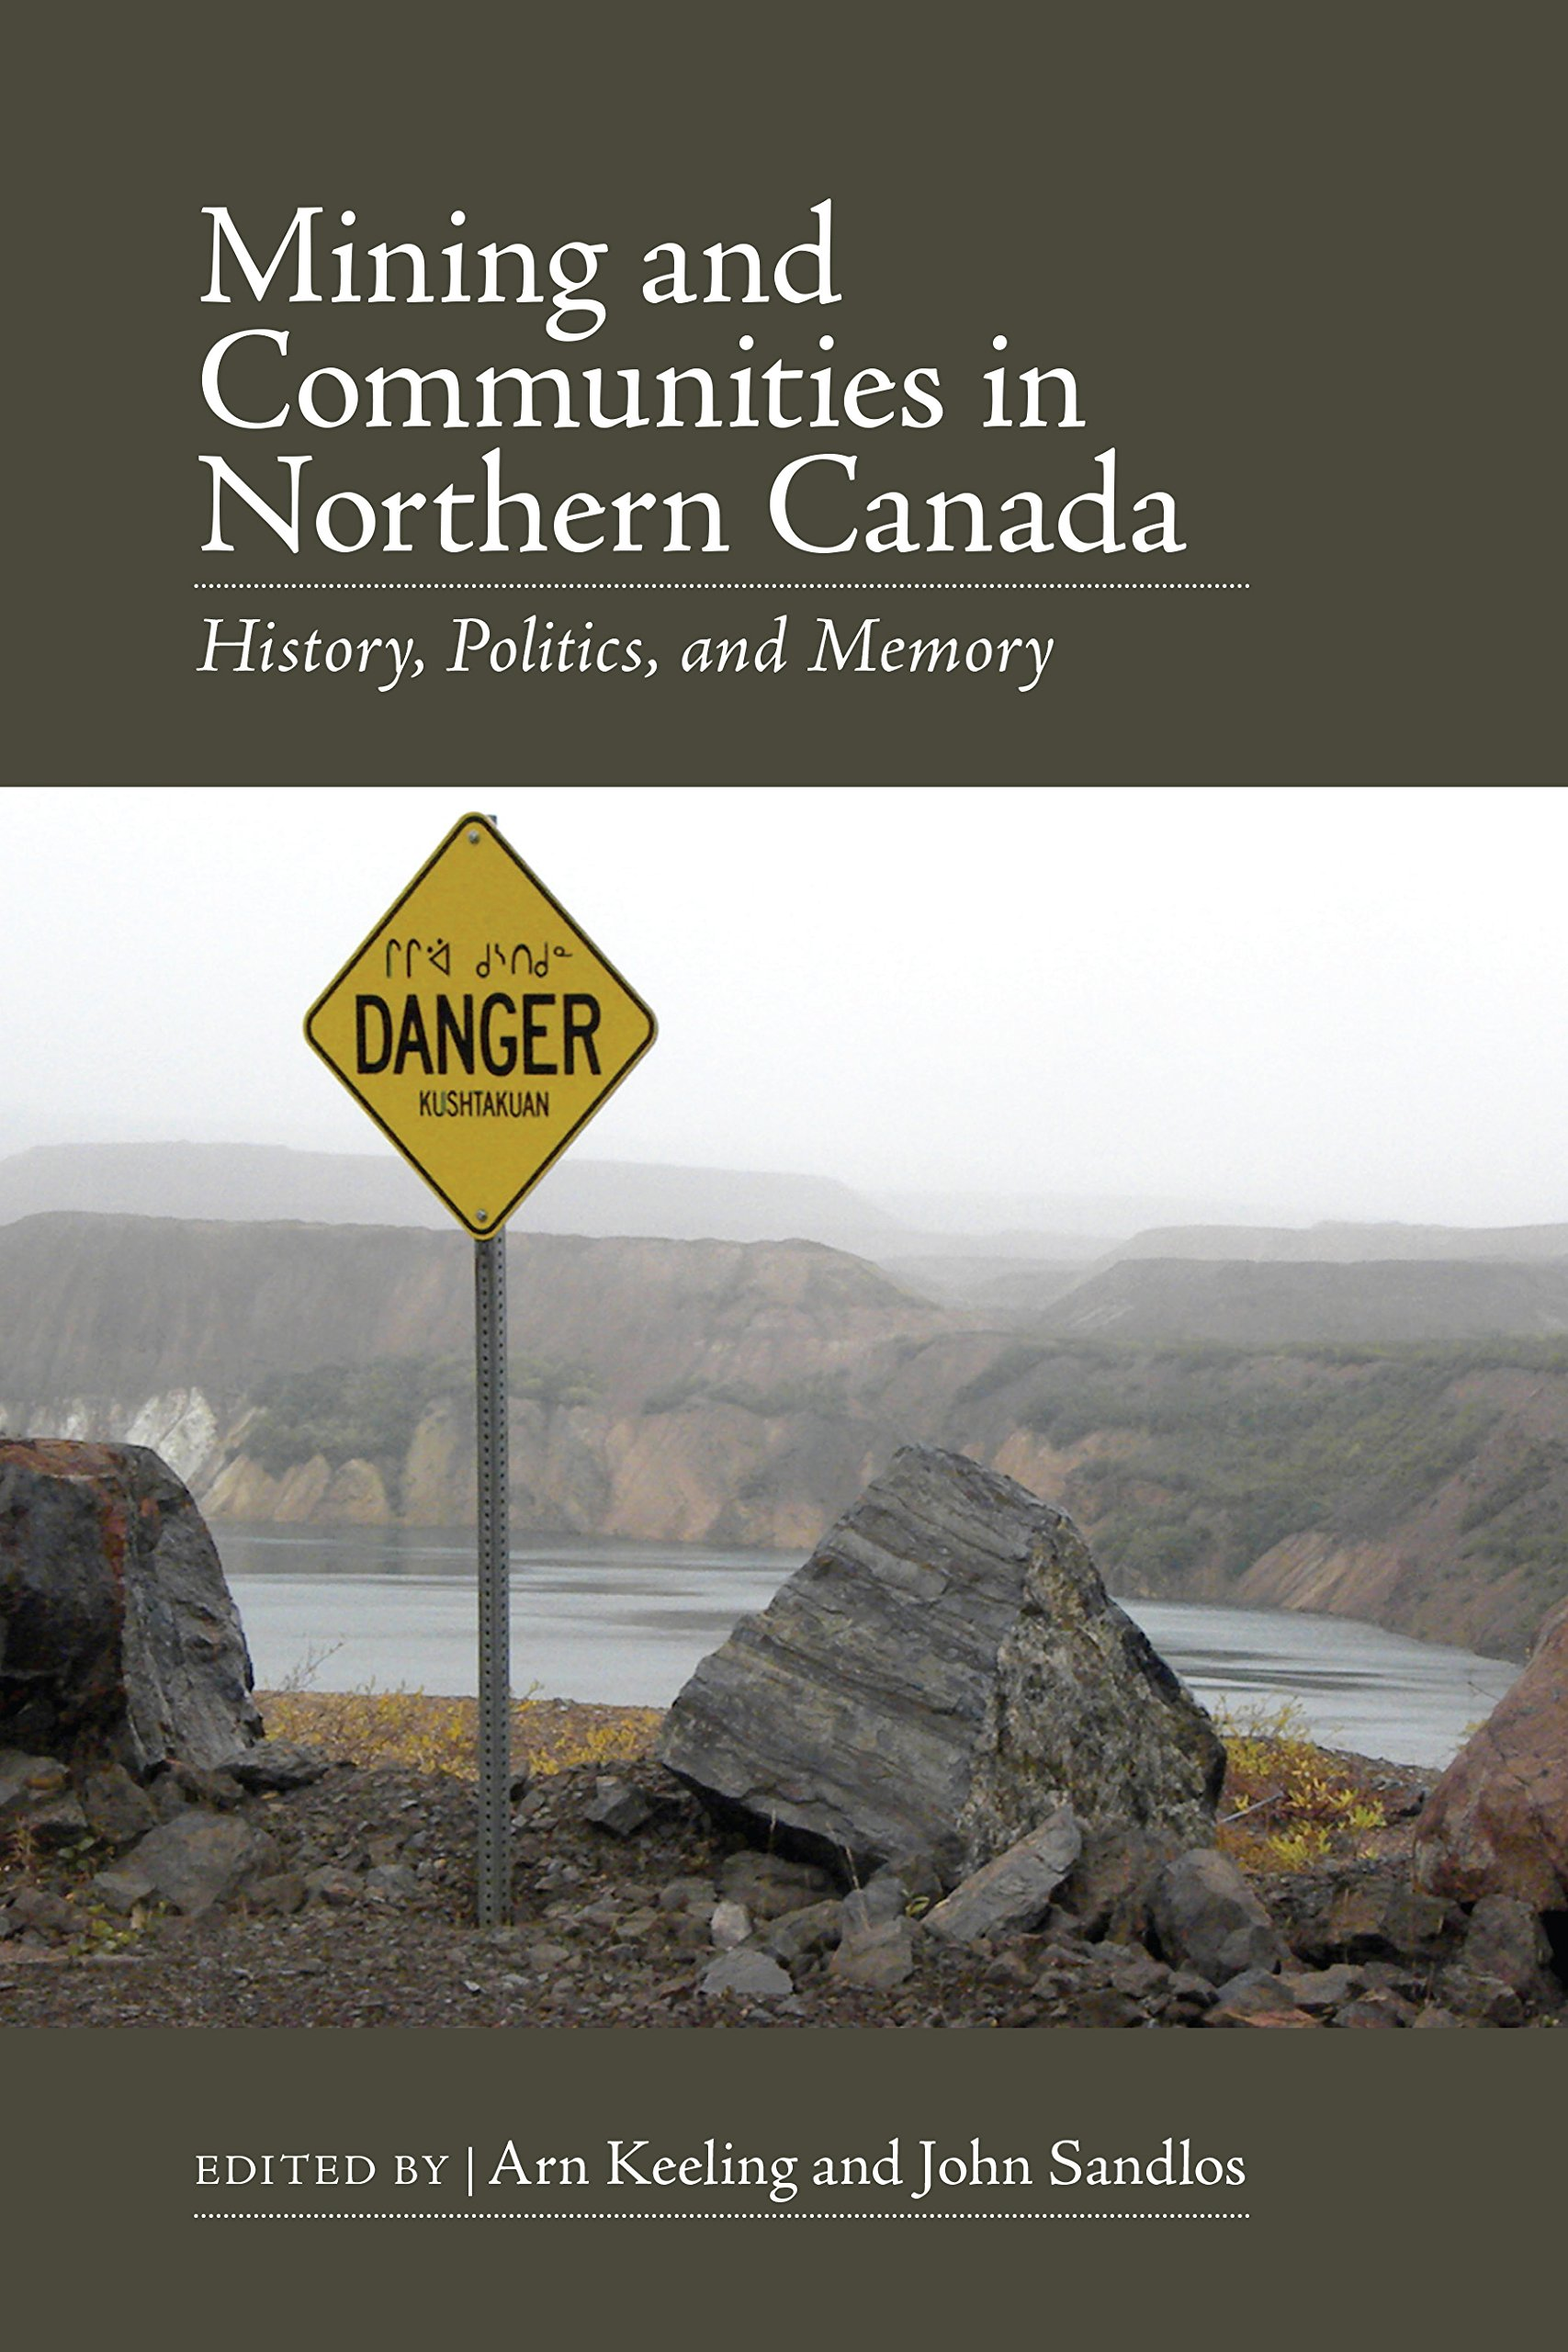 Mining and Communities in Northern Canada: History, Politics, and Memory  (Canadian History and Environment): Arn Keeling, John Sandlos, Patricia  Boulter, ...